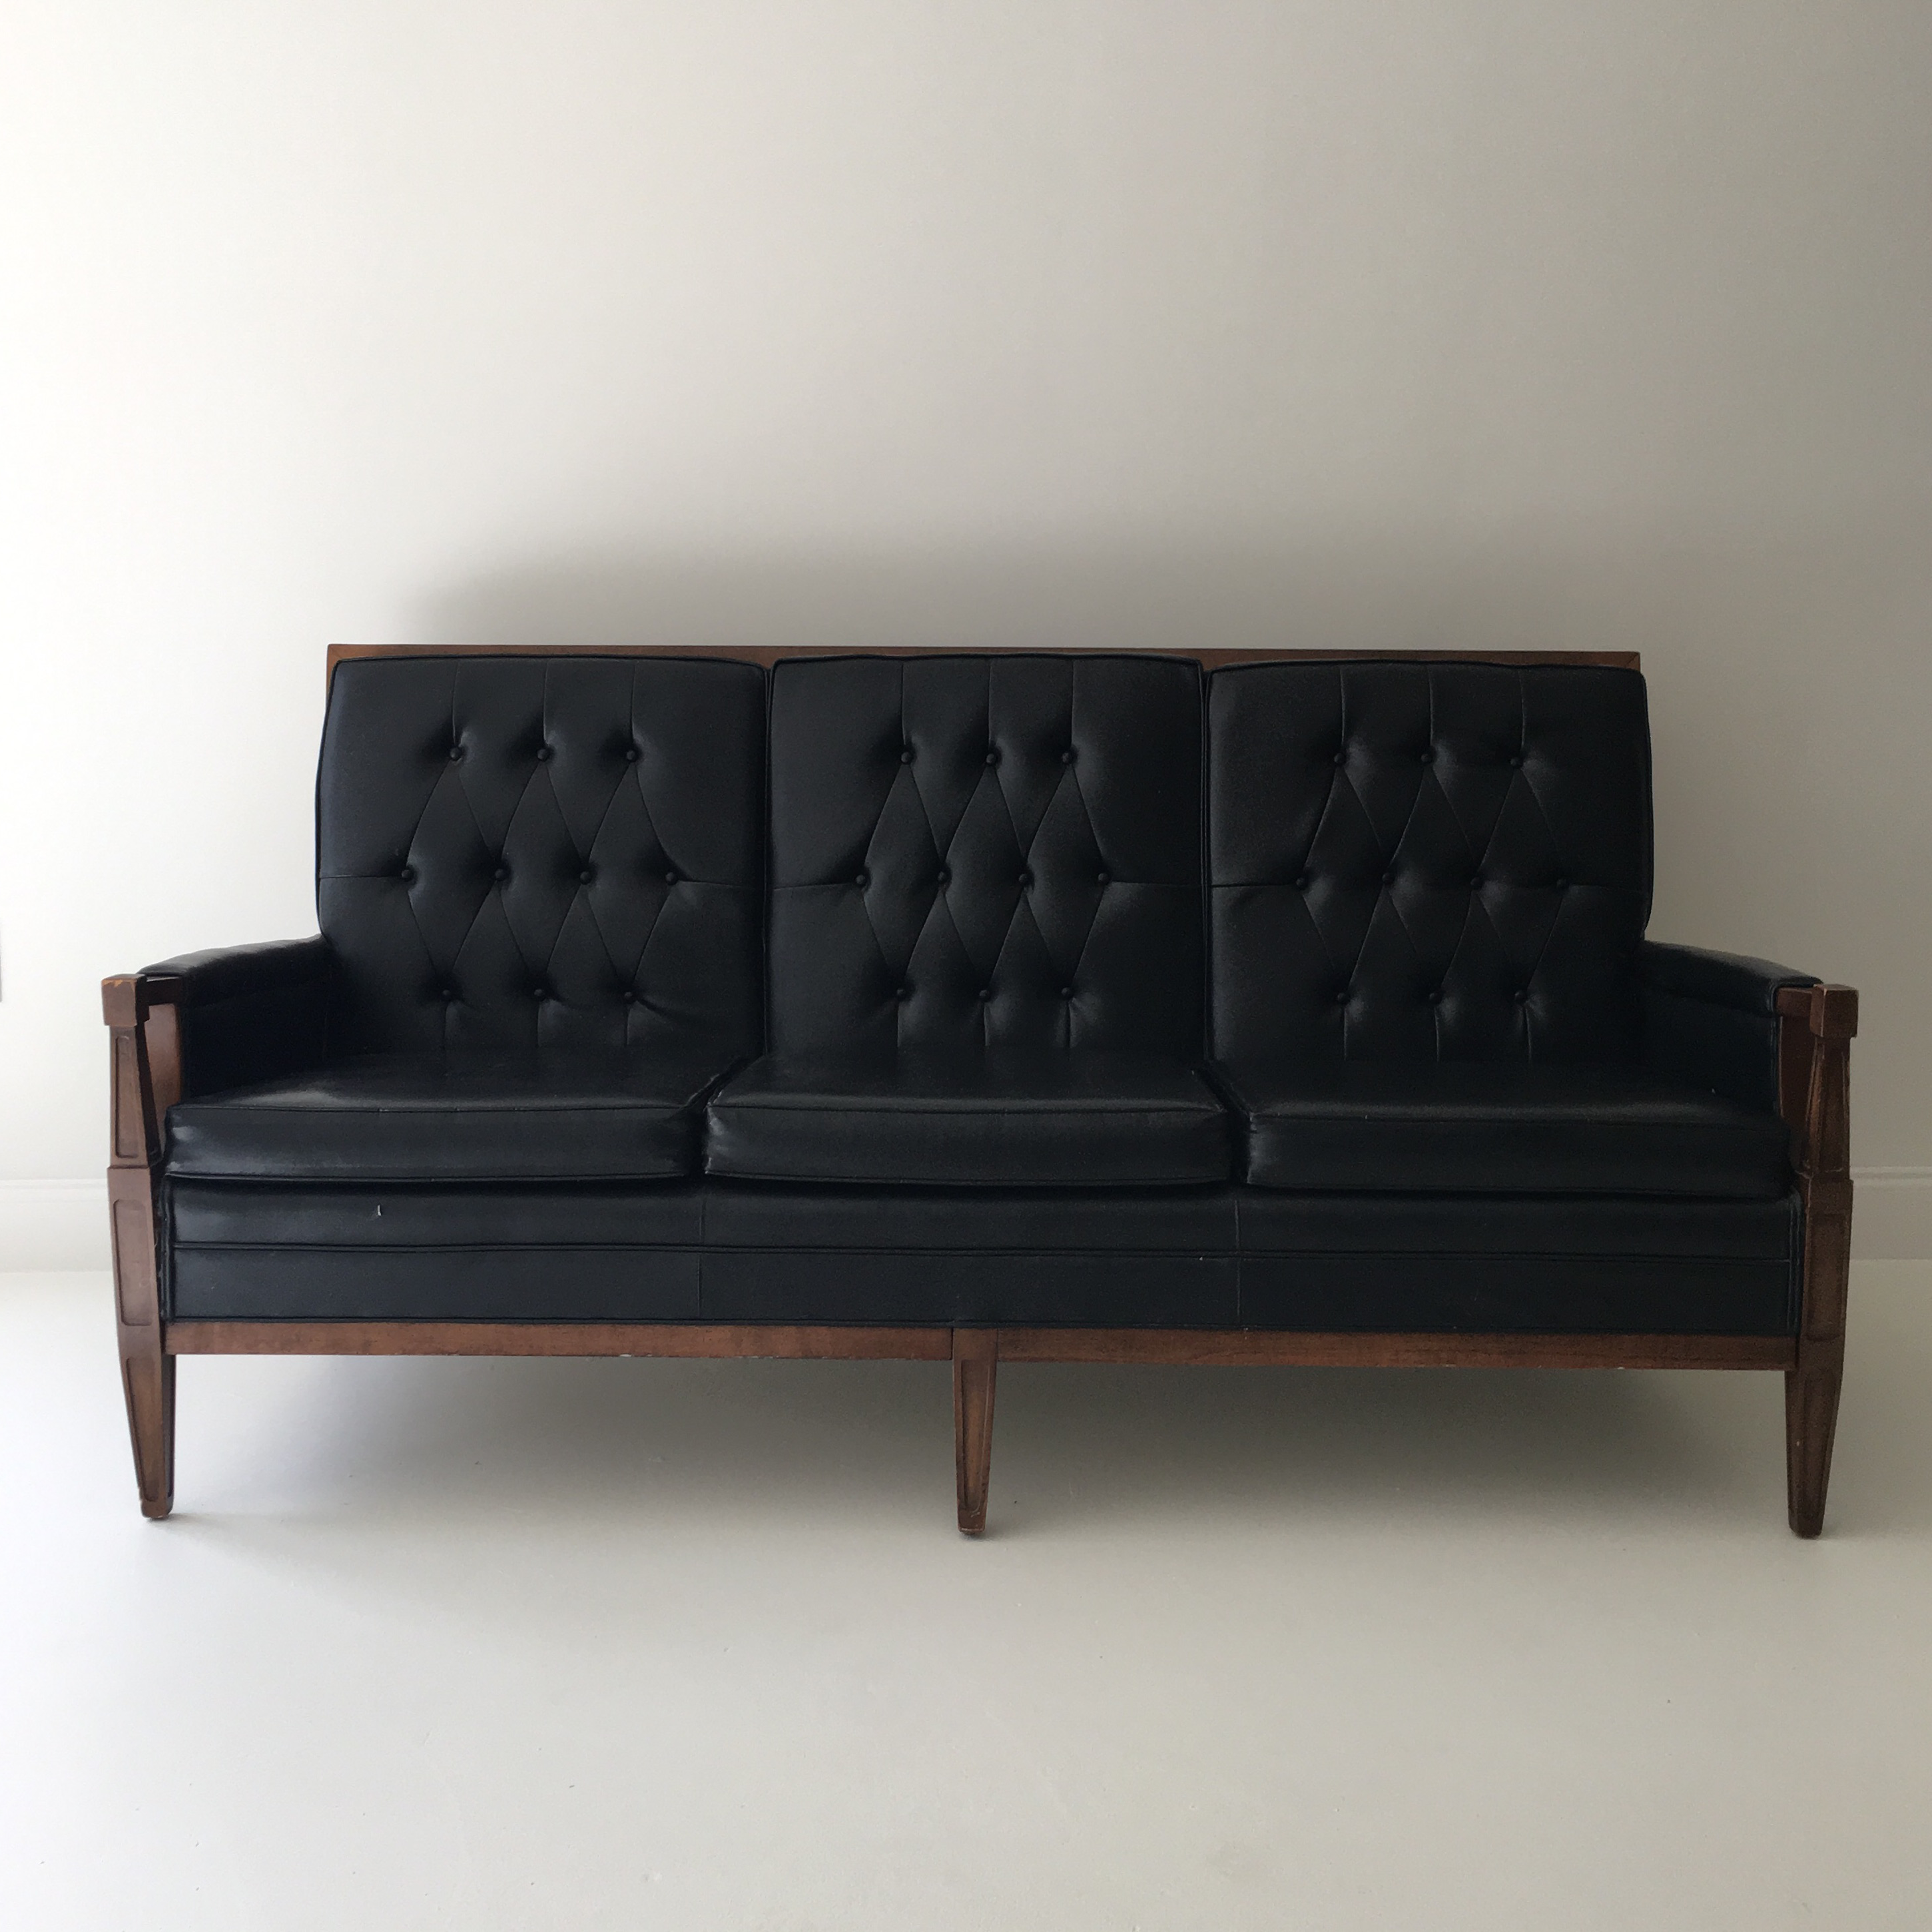 A Very Chic Black Leather Like Vinyl Sofa With A Wood Frame And Tufted Backs